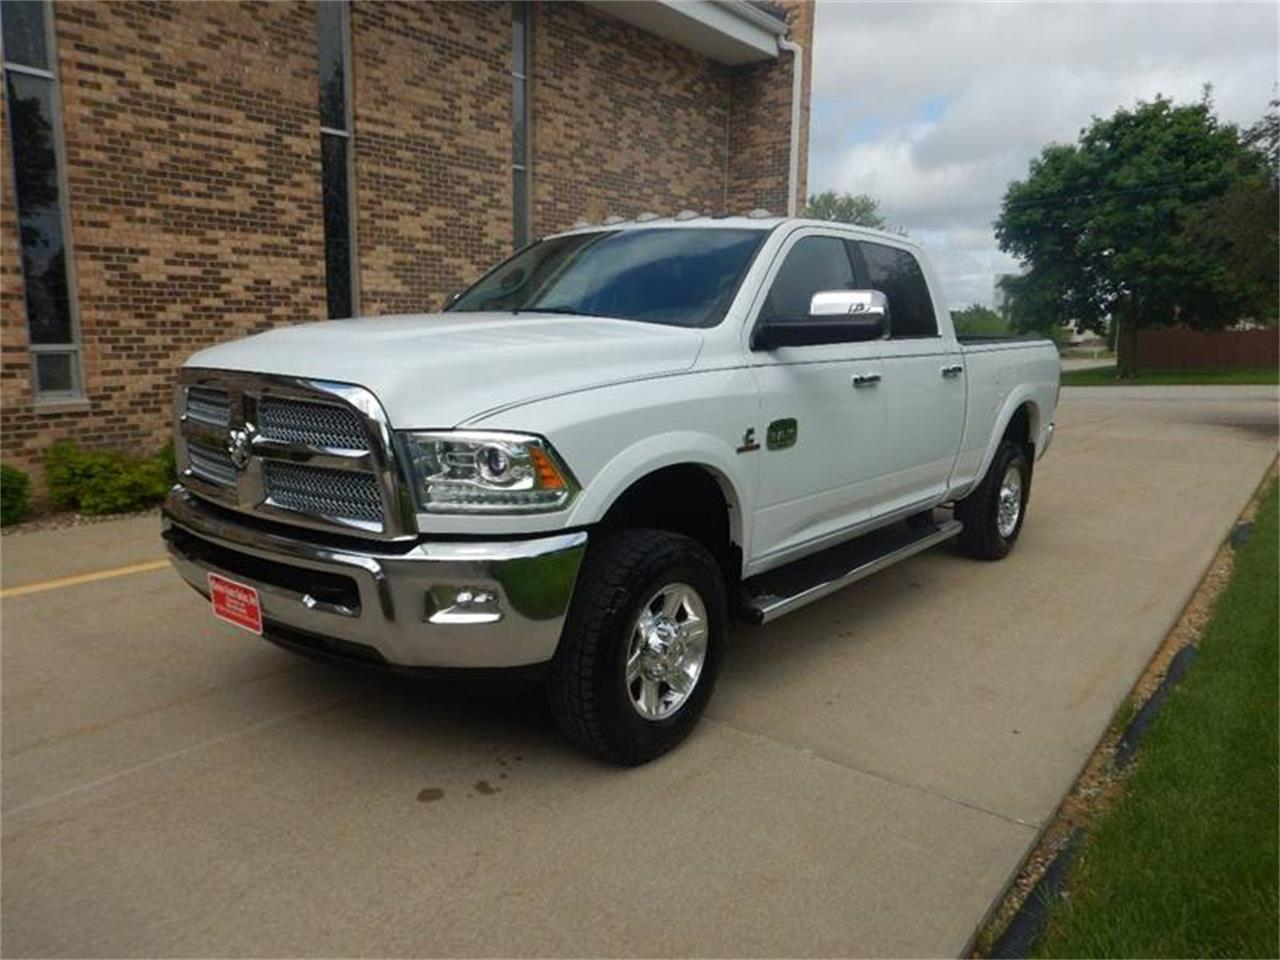 Large Picture of 2013 Ram 2500 located in Iowa - $37,995.00 - Q7IS